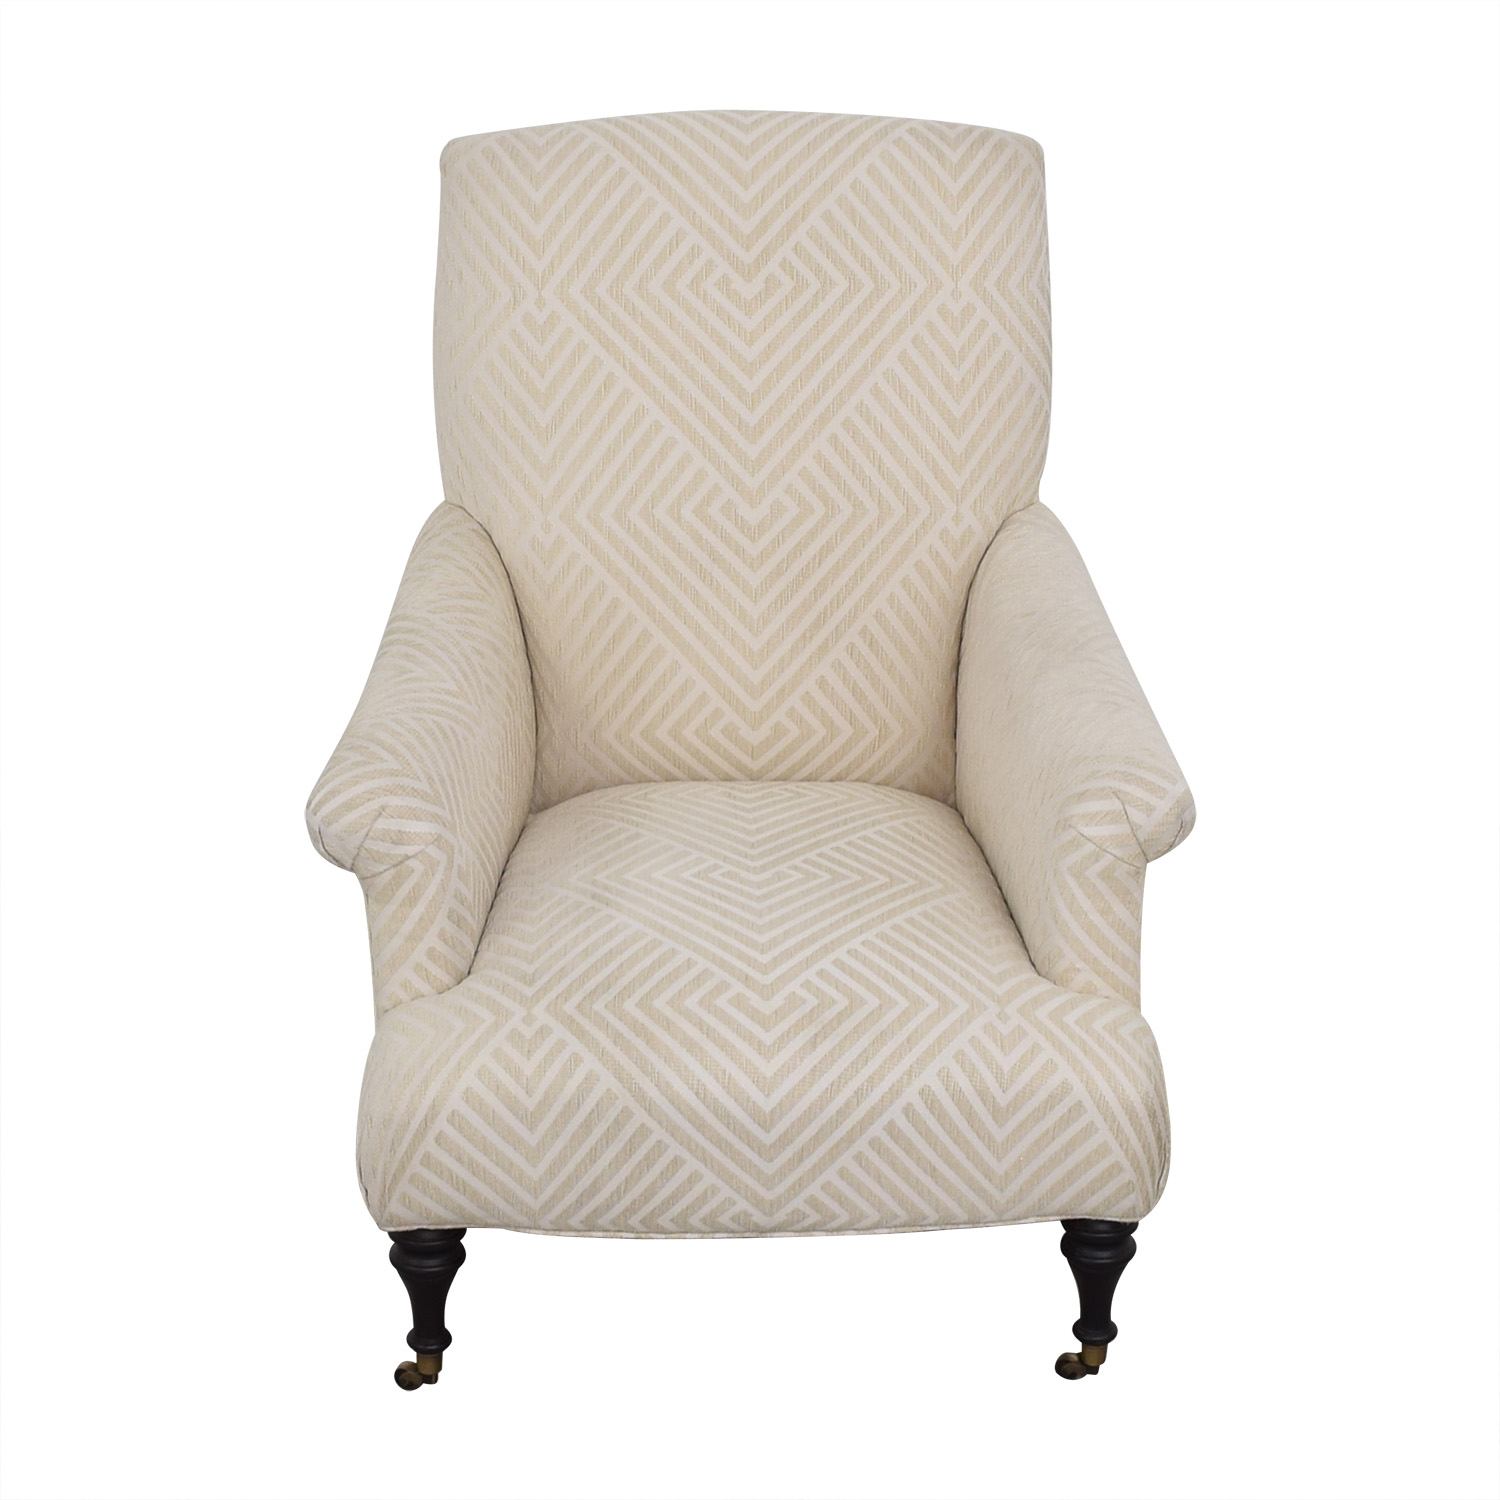 Mitchell Gold + Bob Williams Mitchell Gold + Bob Williams Upholstered Armchair dimensions